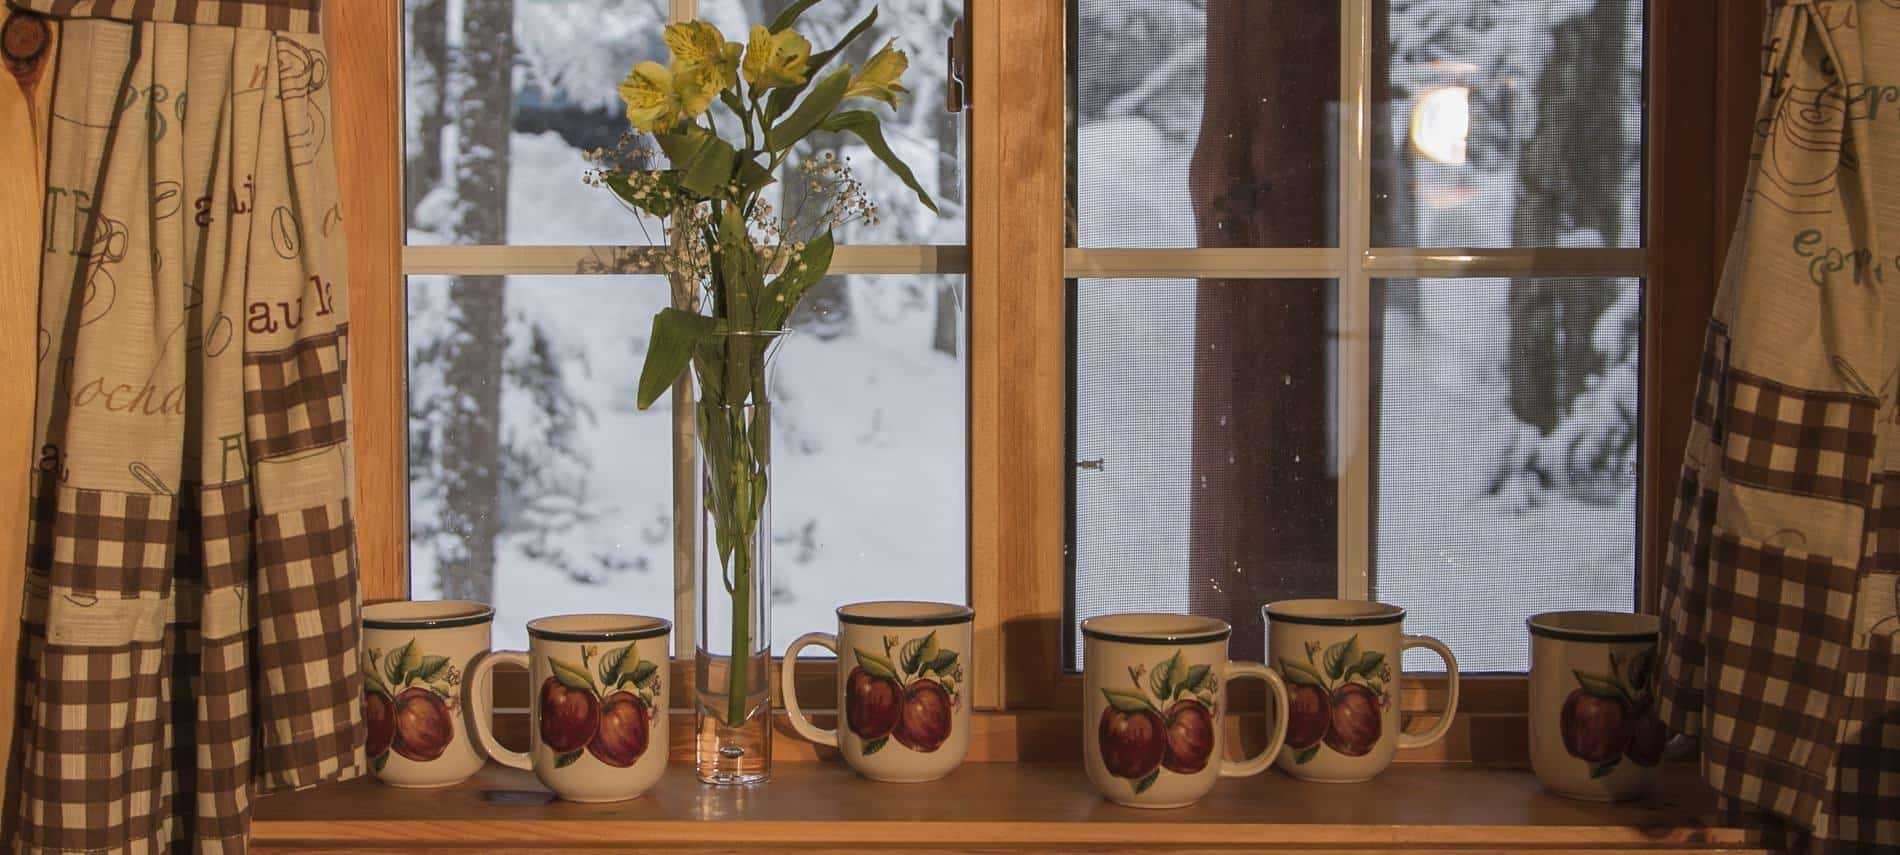 Window with checkered curtains, ceramic mugs with painted apples on the sill and a tall slender glass vase with yellow flowers